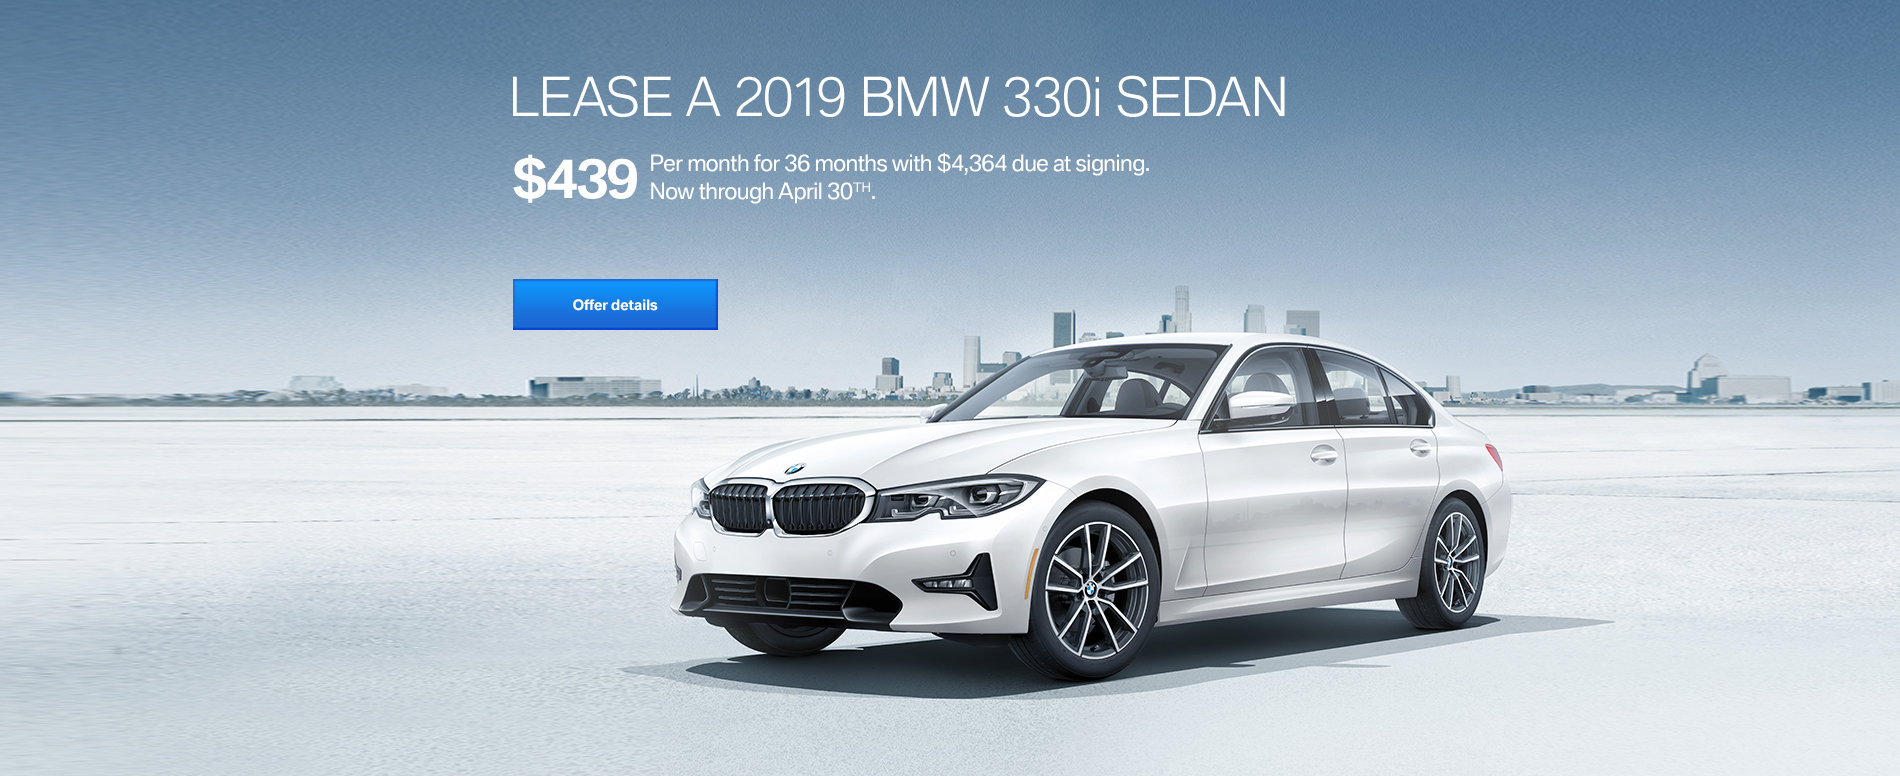 LEASE A 2019 BMW 330i FOR $439/MONTH FOR 36 MONTHS WITH $4,364 D